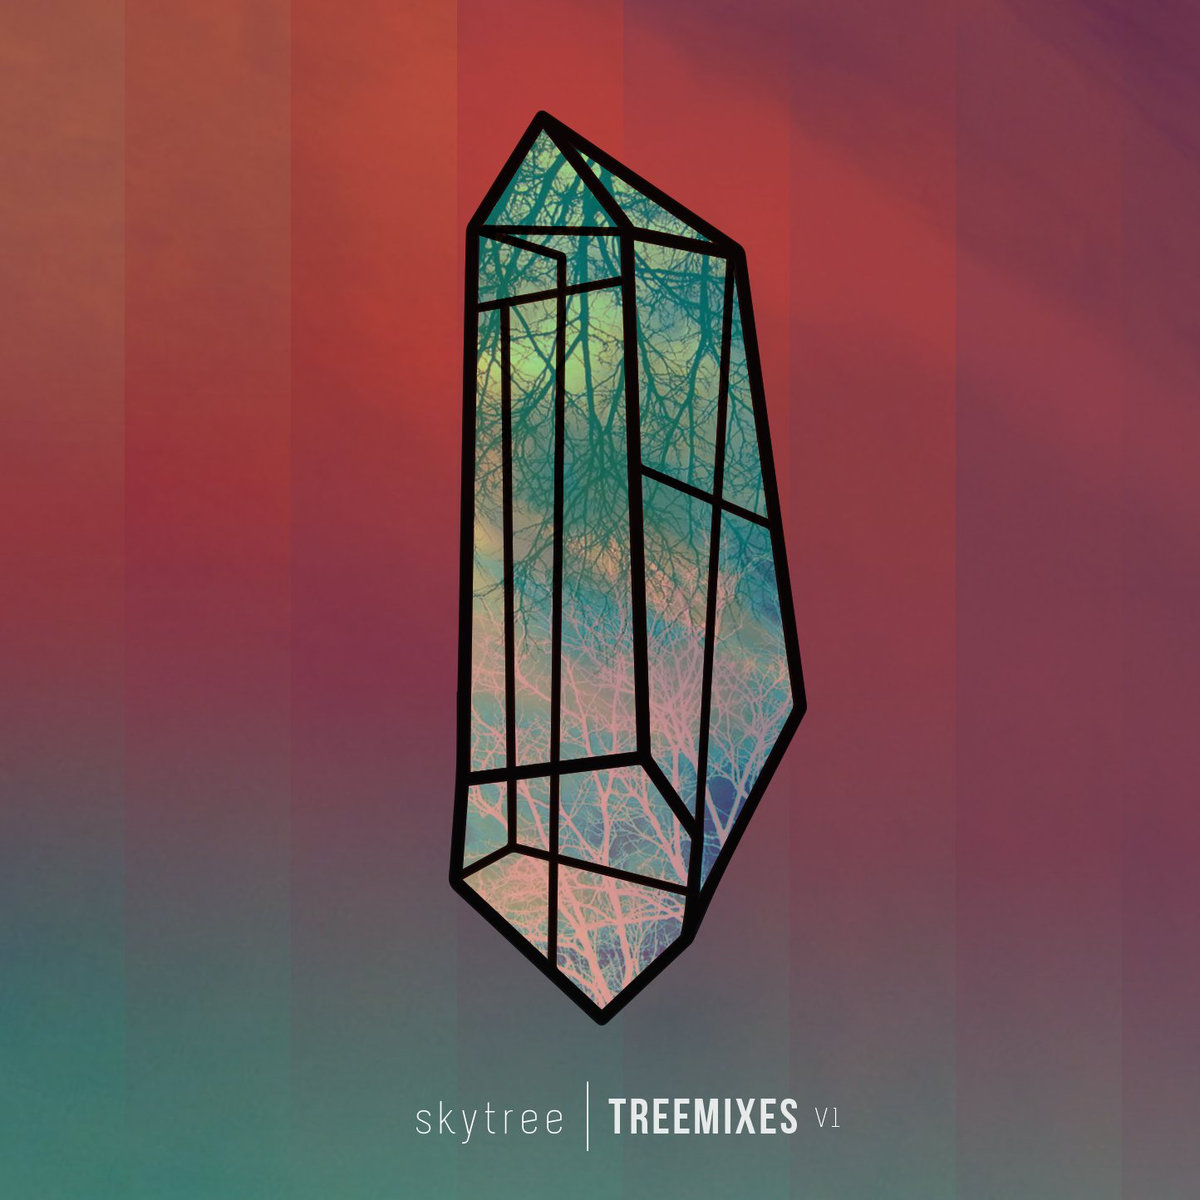 Skytree - Earth Sing (Somatoast remix) @ 'Treemixes V1' album (Austin)